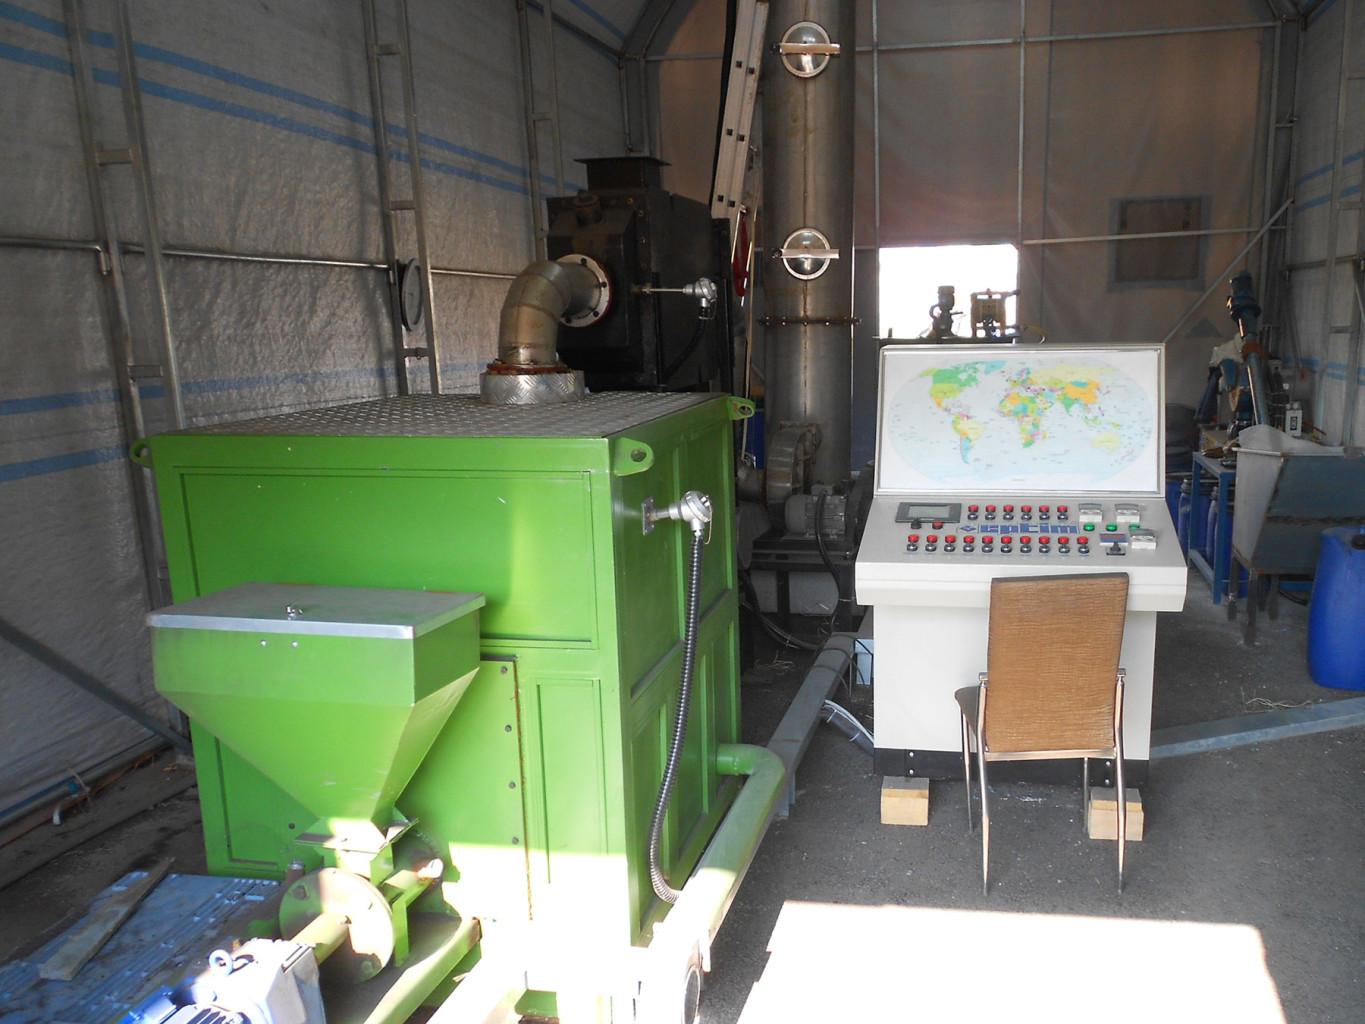 A green technology that transforms gaseous pollutants into fertilizer |The Switchers